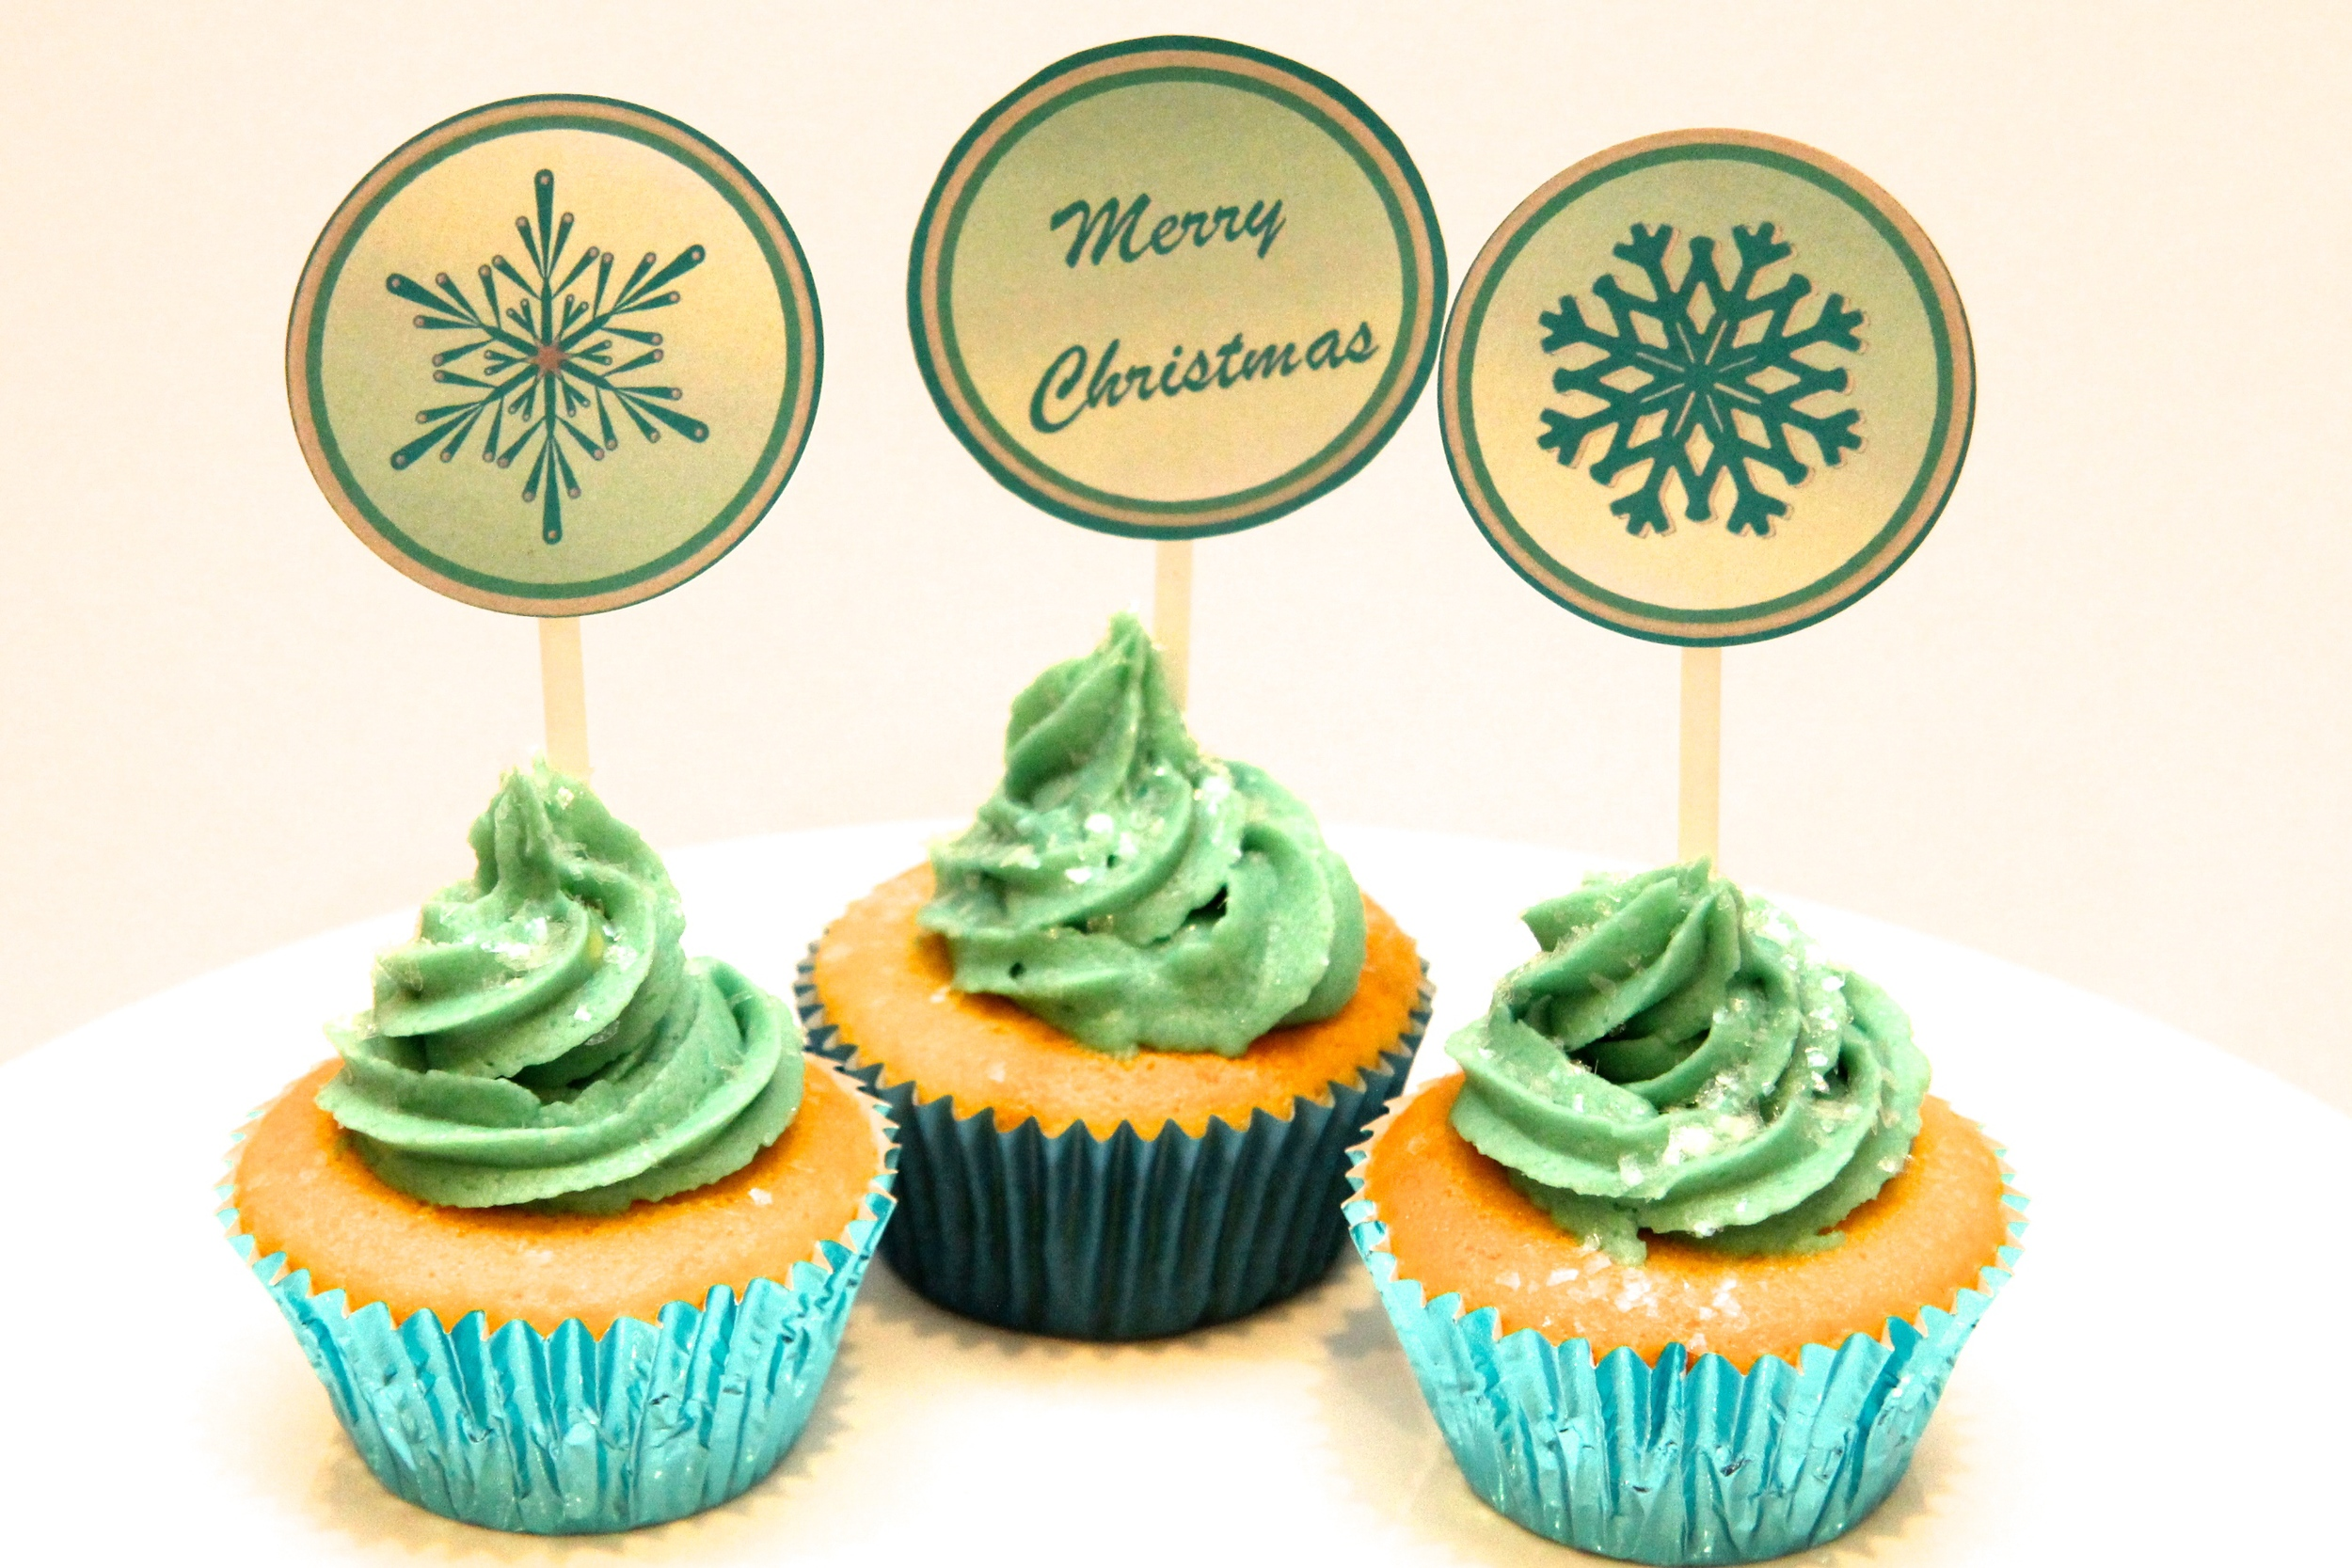 Christmas Cup Cakes with Snow flake design